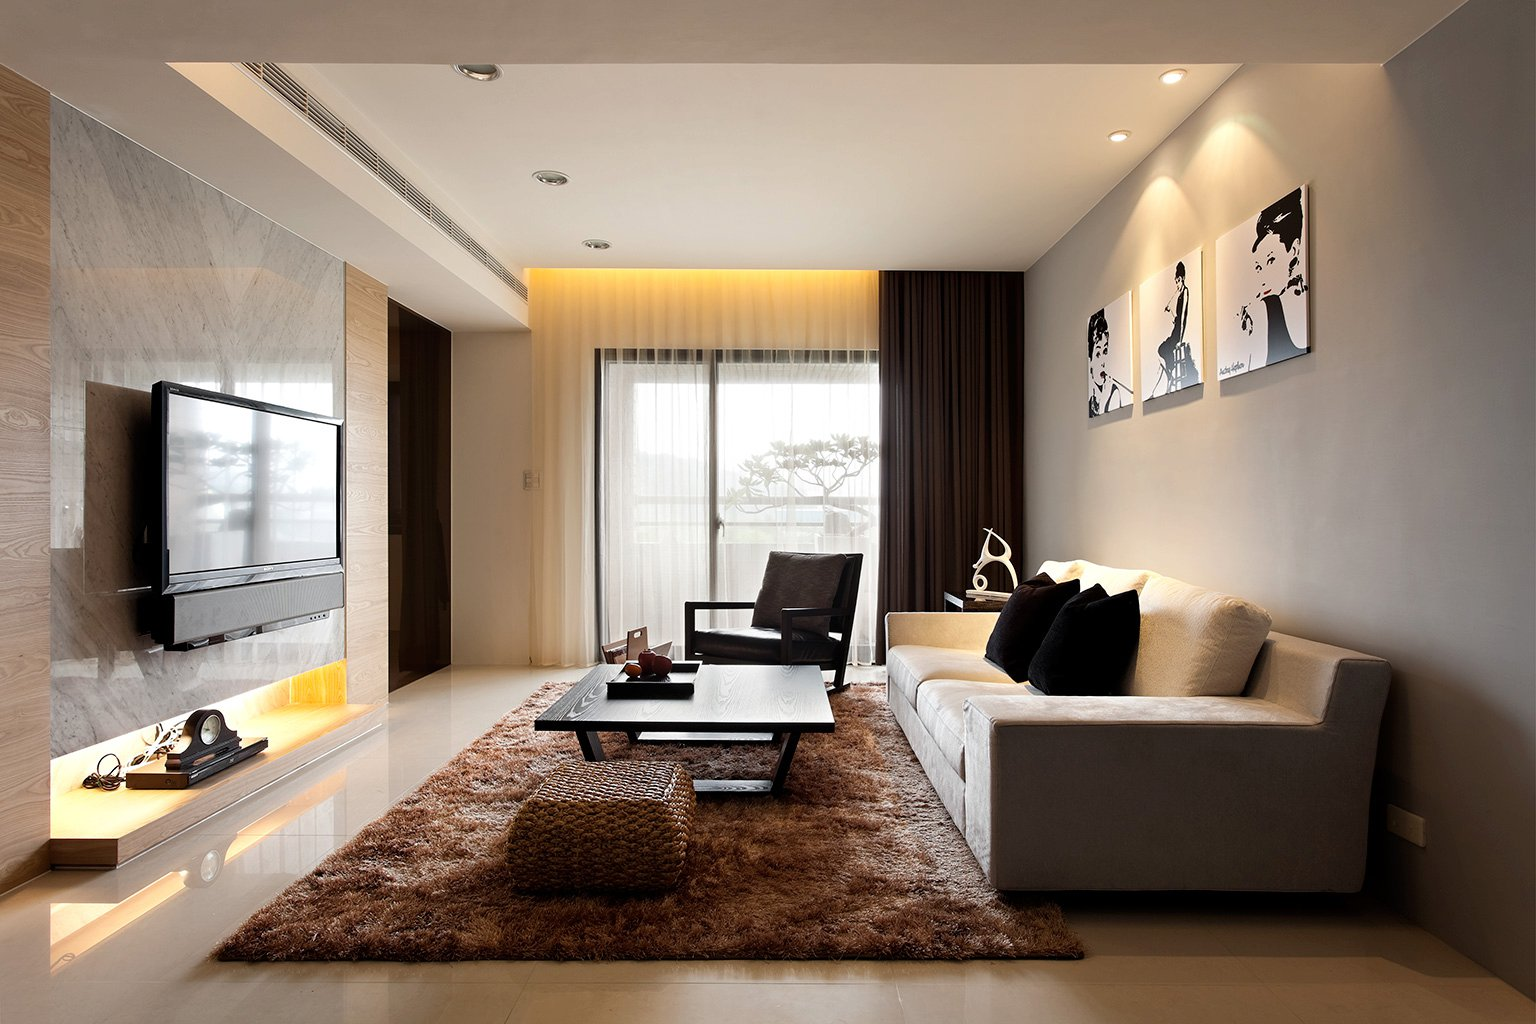 living room decorating ideas click for details 11 modern living room ...